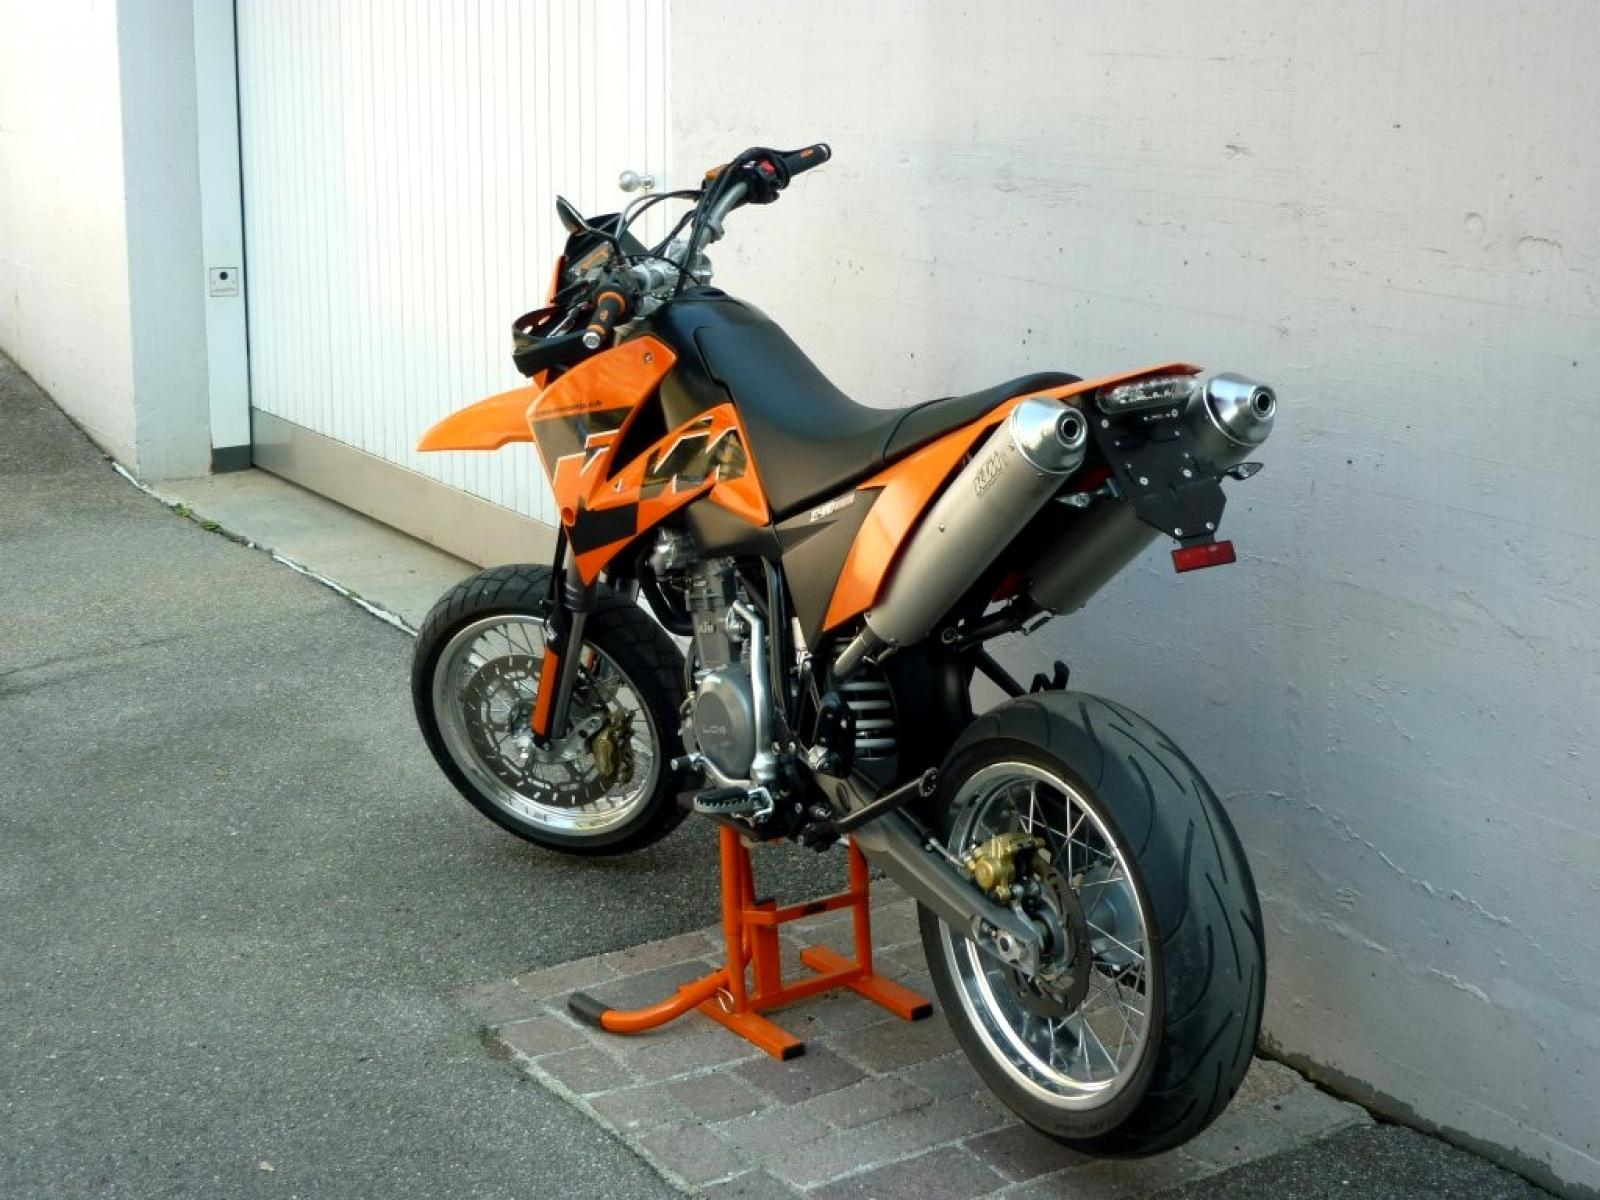 2003 ktm 640 lc4 supermoto moto zombdrive com. Black Bedroom Furniture Sets. Home Design Ideas